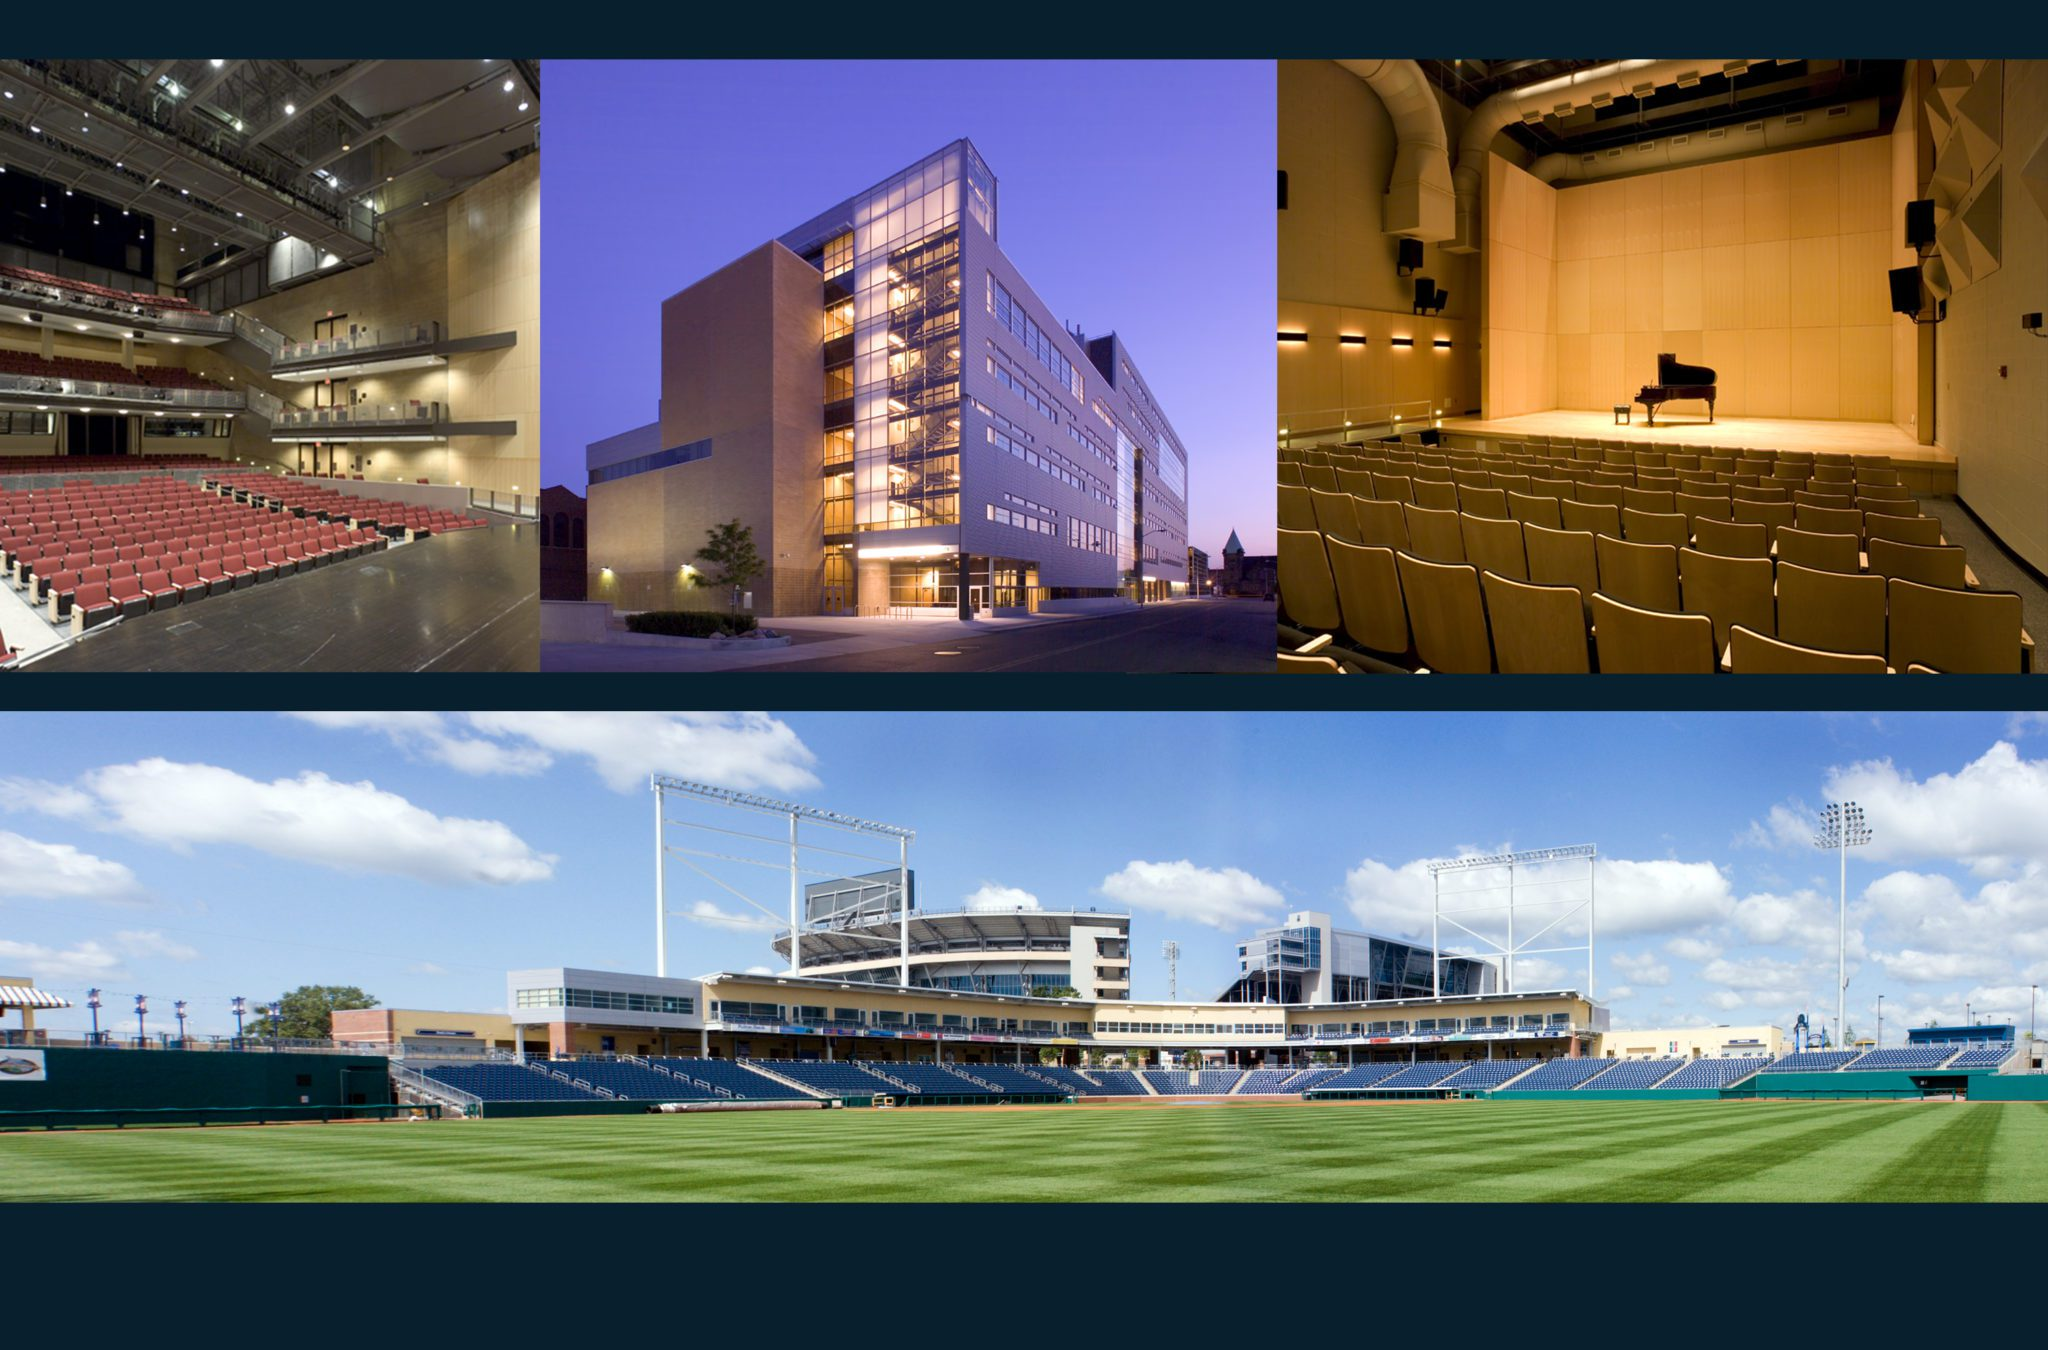 Collage of Detroit School of Arts and Medlar Field at Lubrano Park